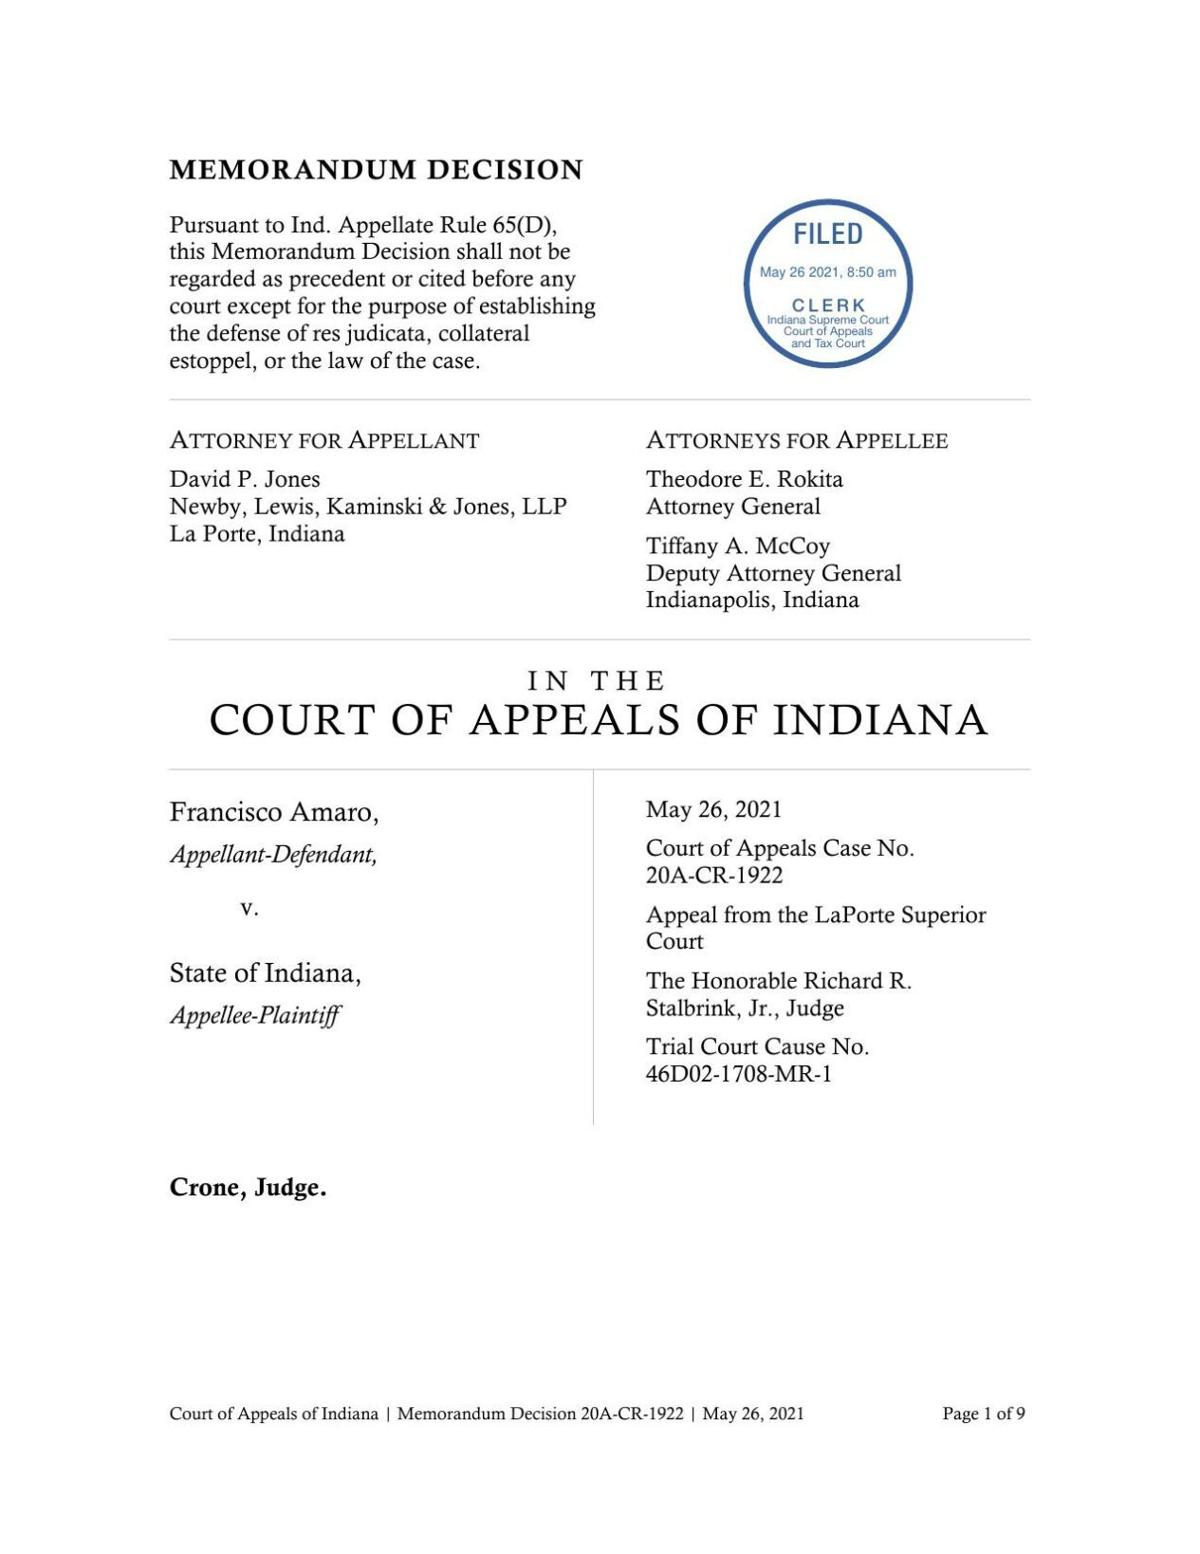 Amaro v. State ruling of Indiana Court of Appeals